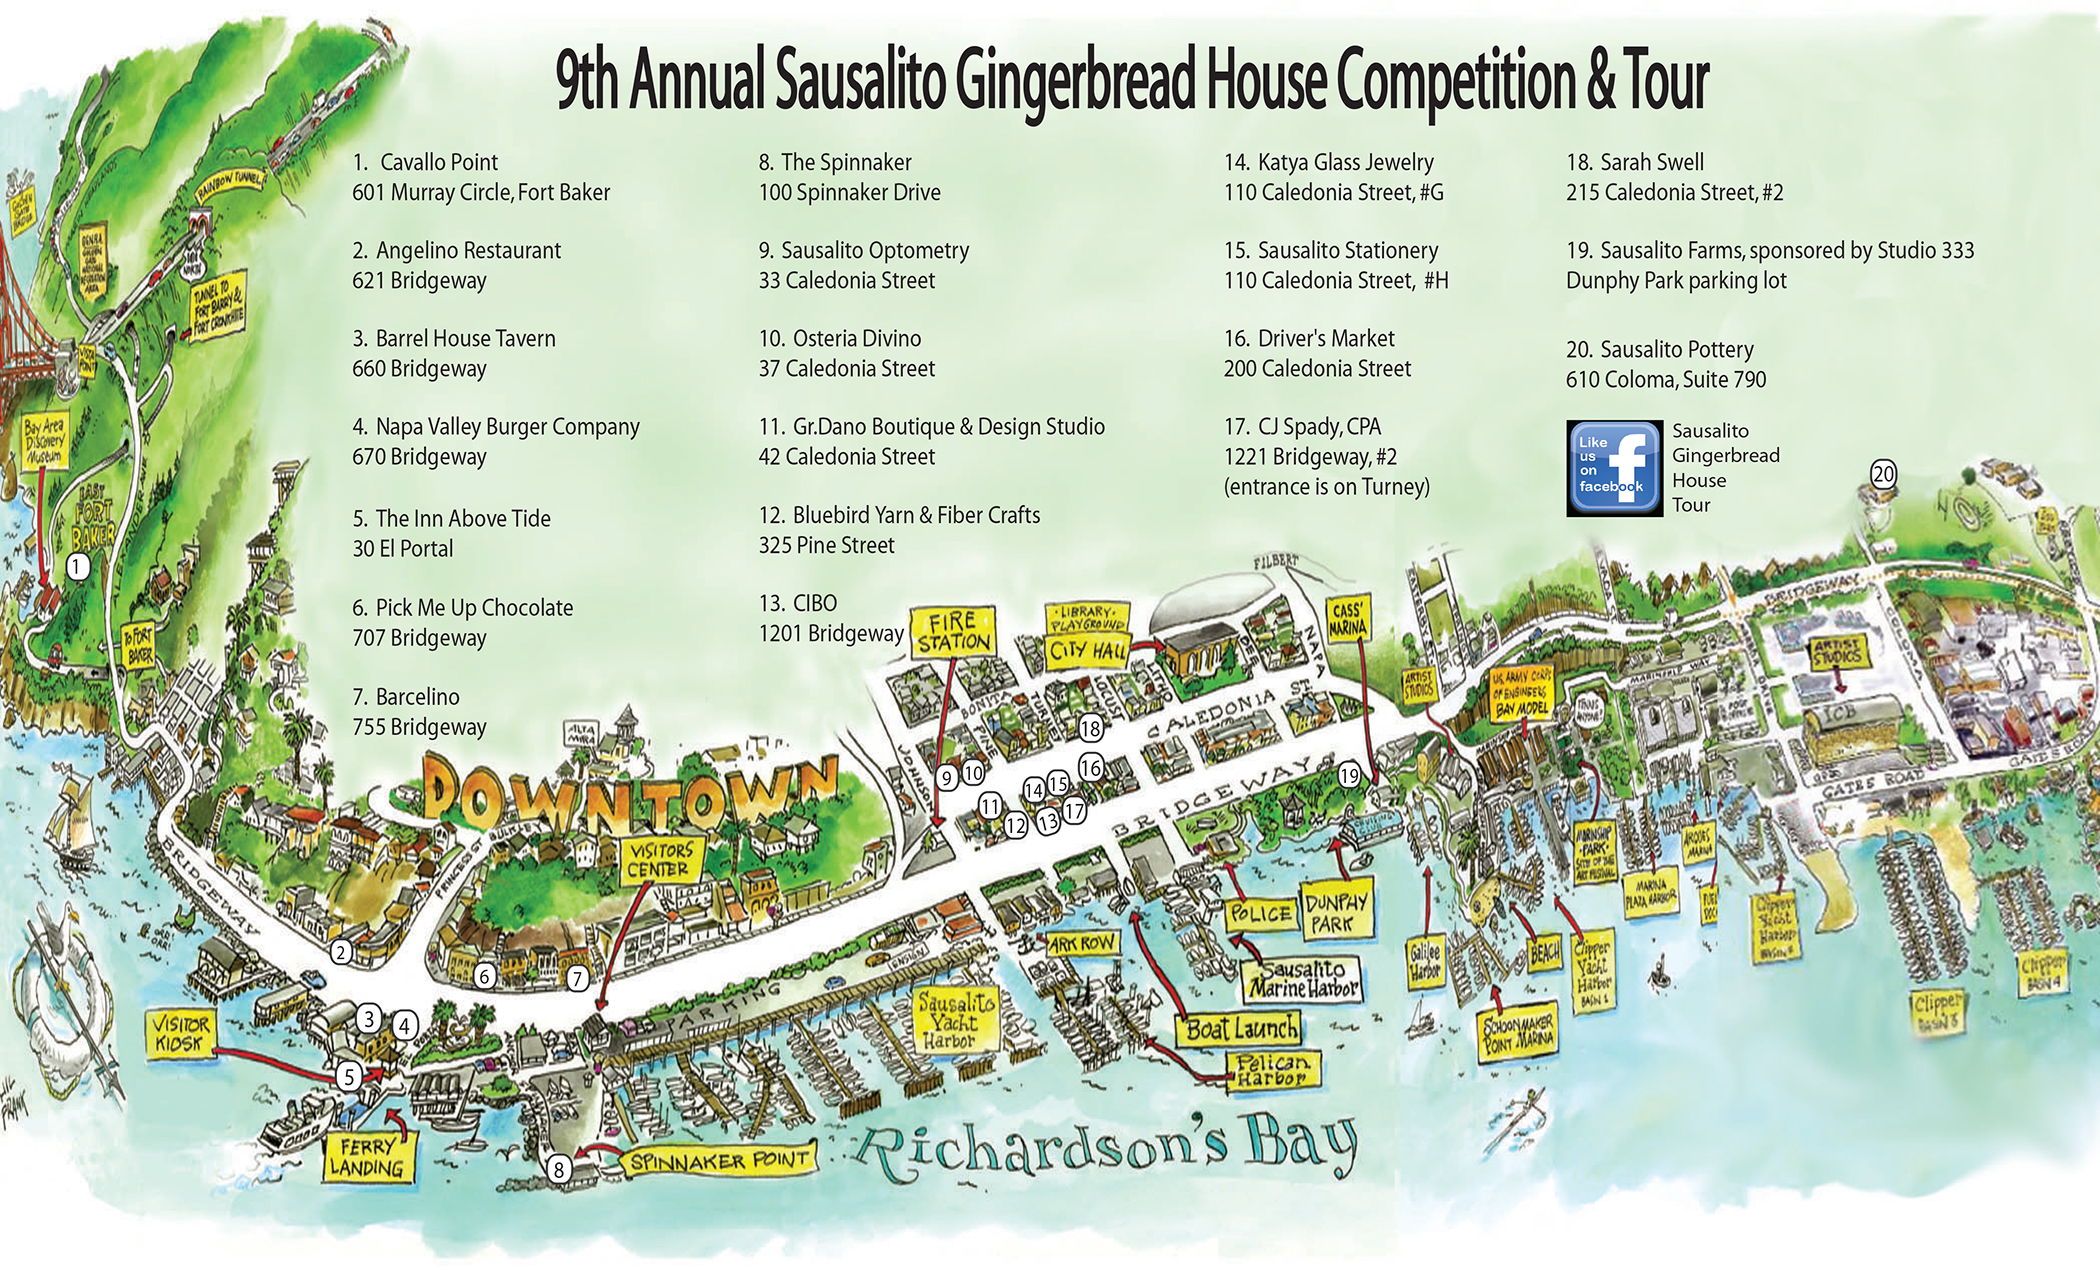 City Map Of Sausalito Related Keywords & Suggestions - City ... Sausalito Tourist Map on san francisco cruise port map, sausalito real estate, sausalito ca, sausalito beach, marin headlands hiking map, sausalito attractions, san francisco bus map, sausalito map.pdf, sausalito shopping, sausalito ferry, sausalito mexico, sausalito art festival, san francisco city map, sausalito architecture, sausalito hotels, angel island state park map, sausalito san francisco, sausalito california things to do, sausalito restaurants, sausalito points of interest,